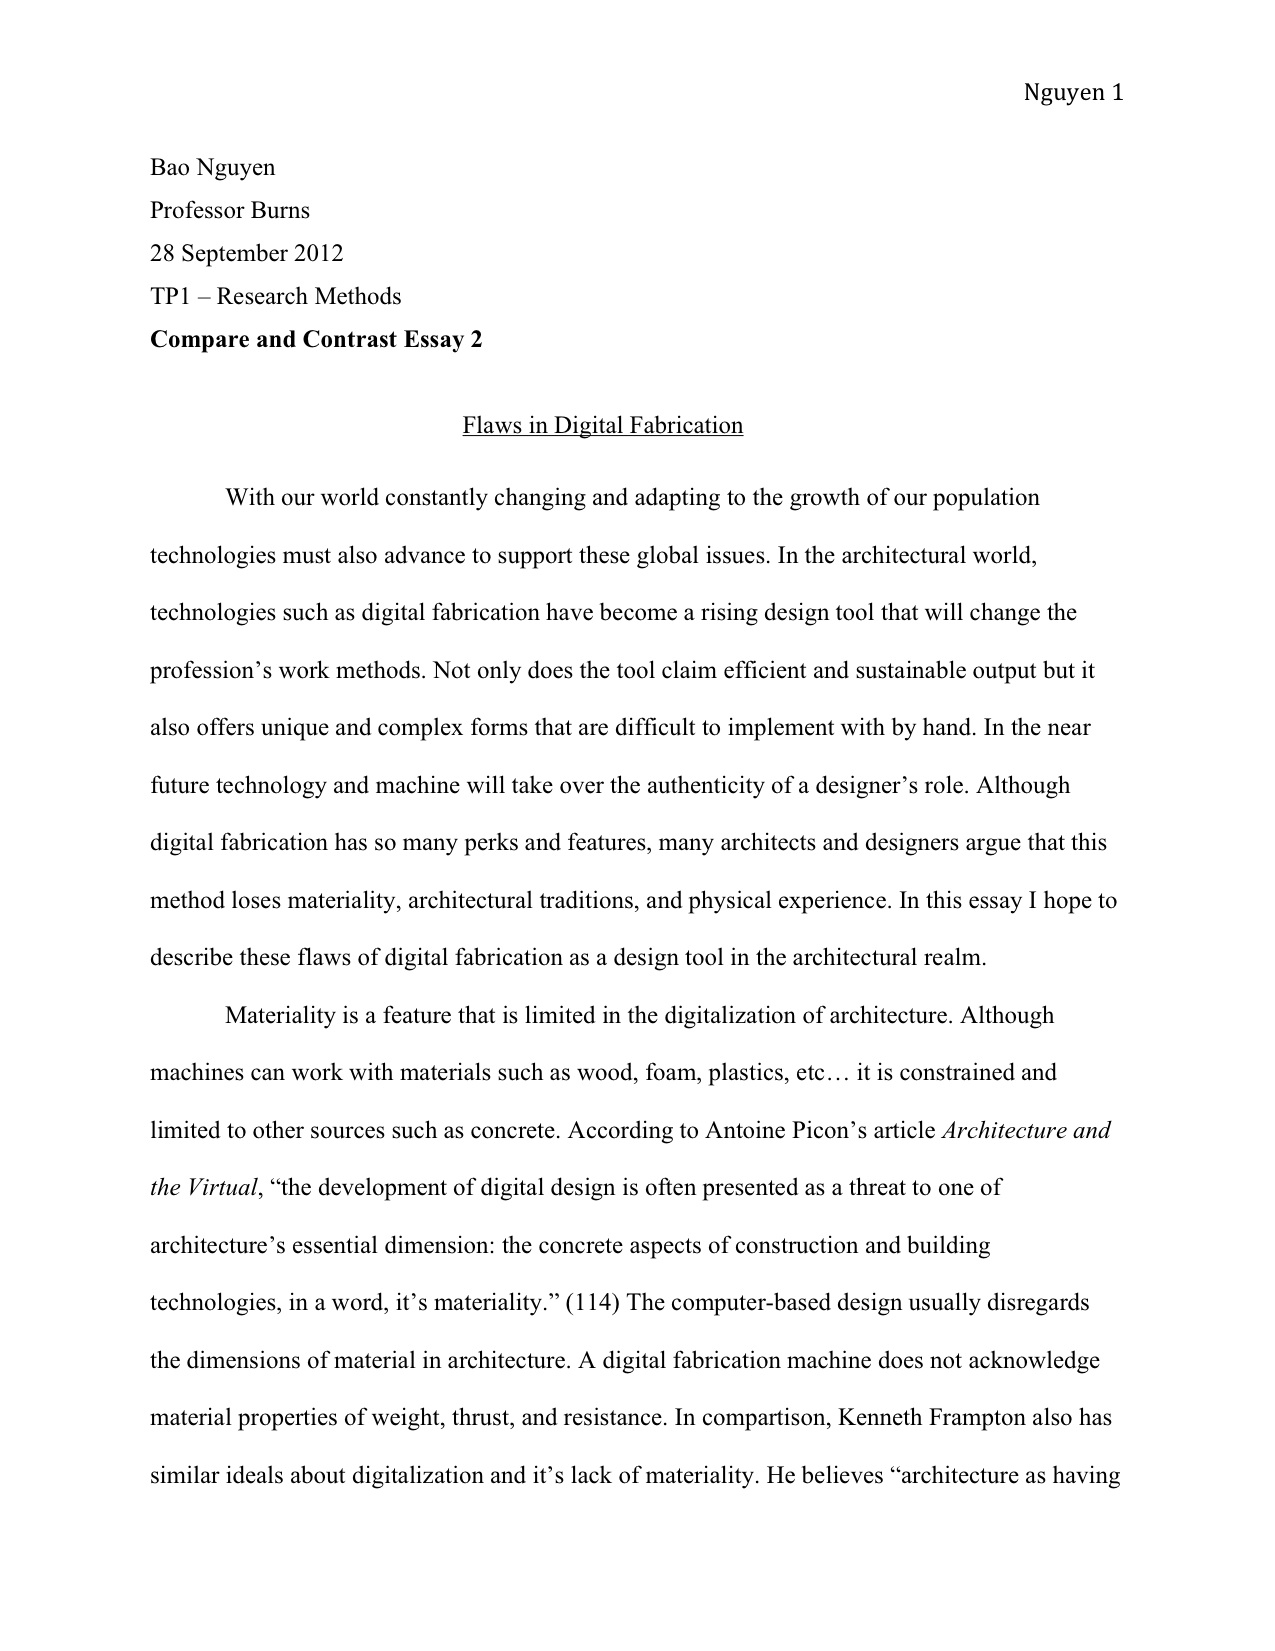 010 Examples Of Hooks For Essays Essay Example Tp1 3 Sensational Some Writing Expository Opinion Full